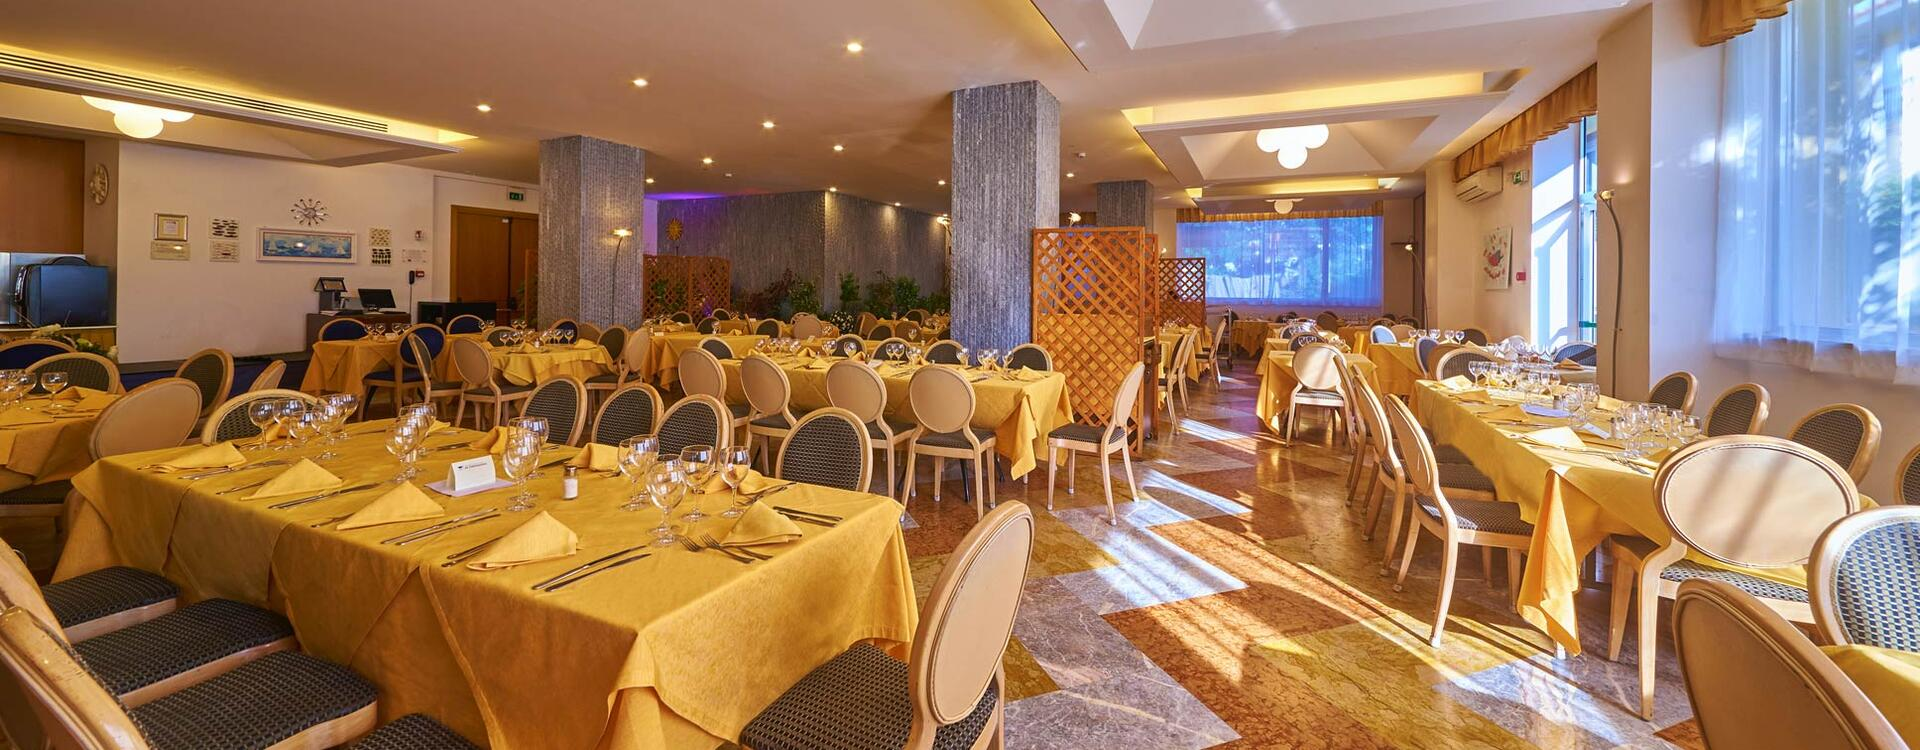 hotelreferdinandoischia it home 007